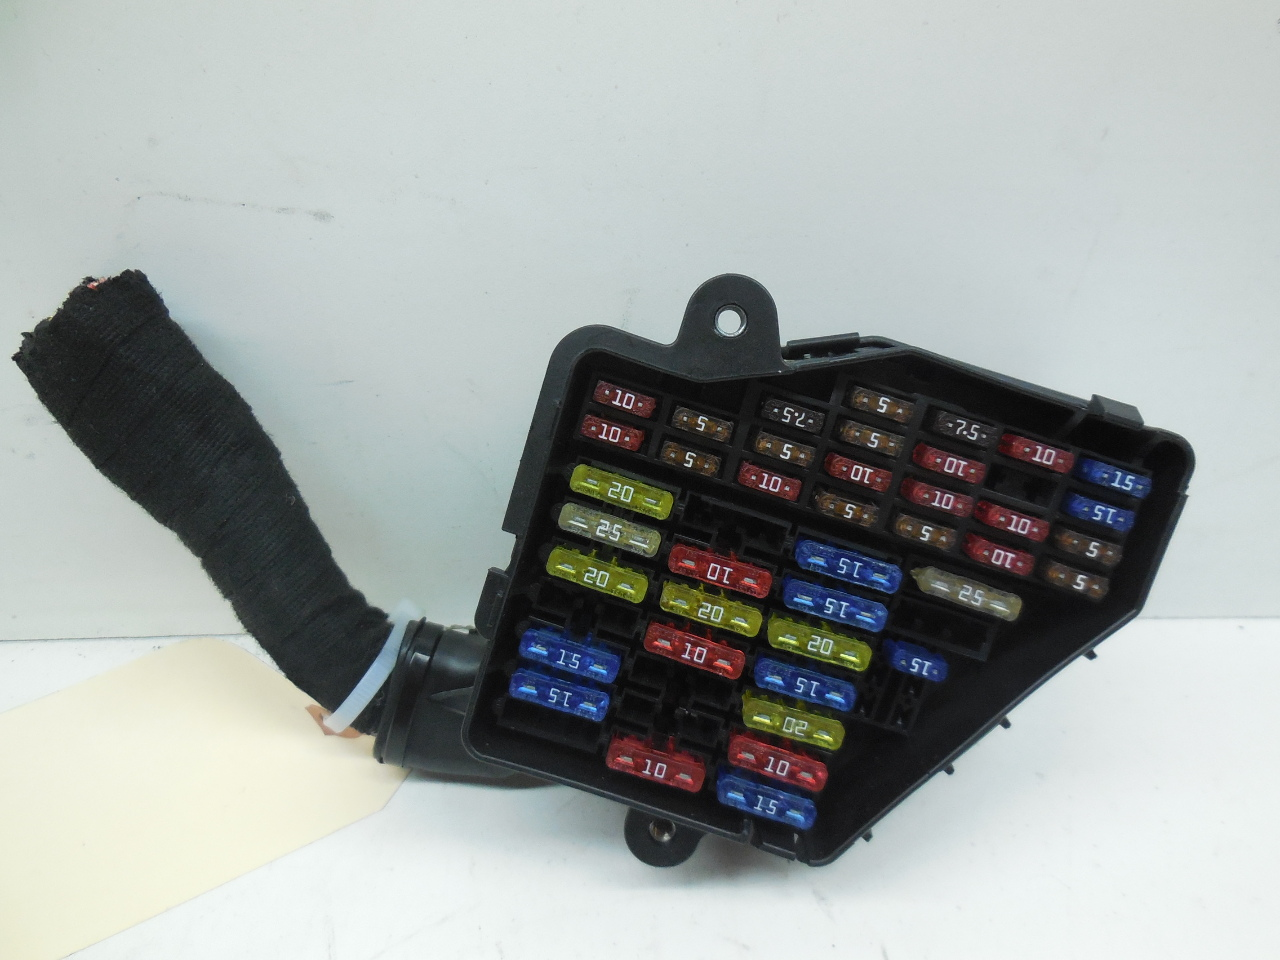 fuse box for audi tt fuse box for audi a4 2003 dash fuse box 00 01 audi tt dash fuse box wire harness ...